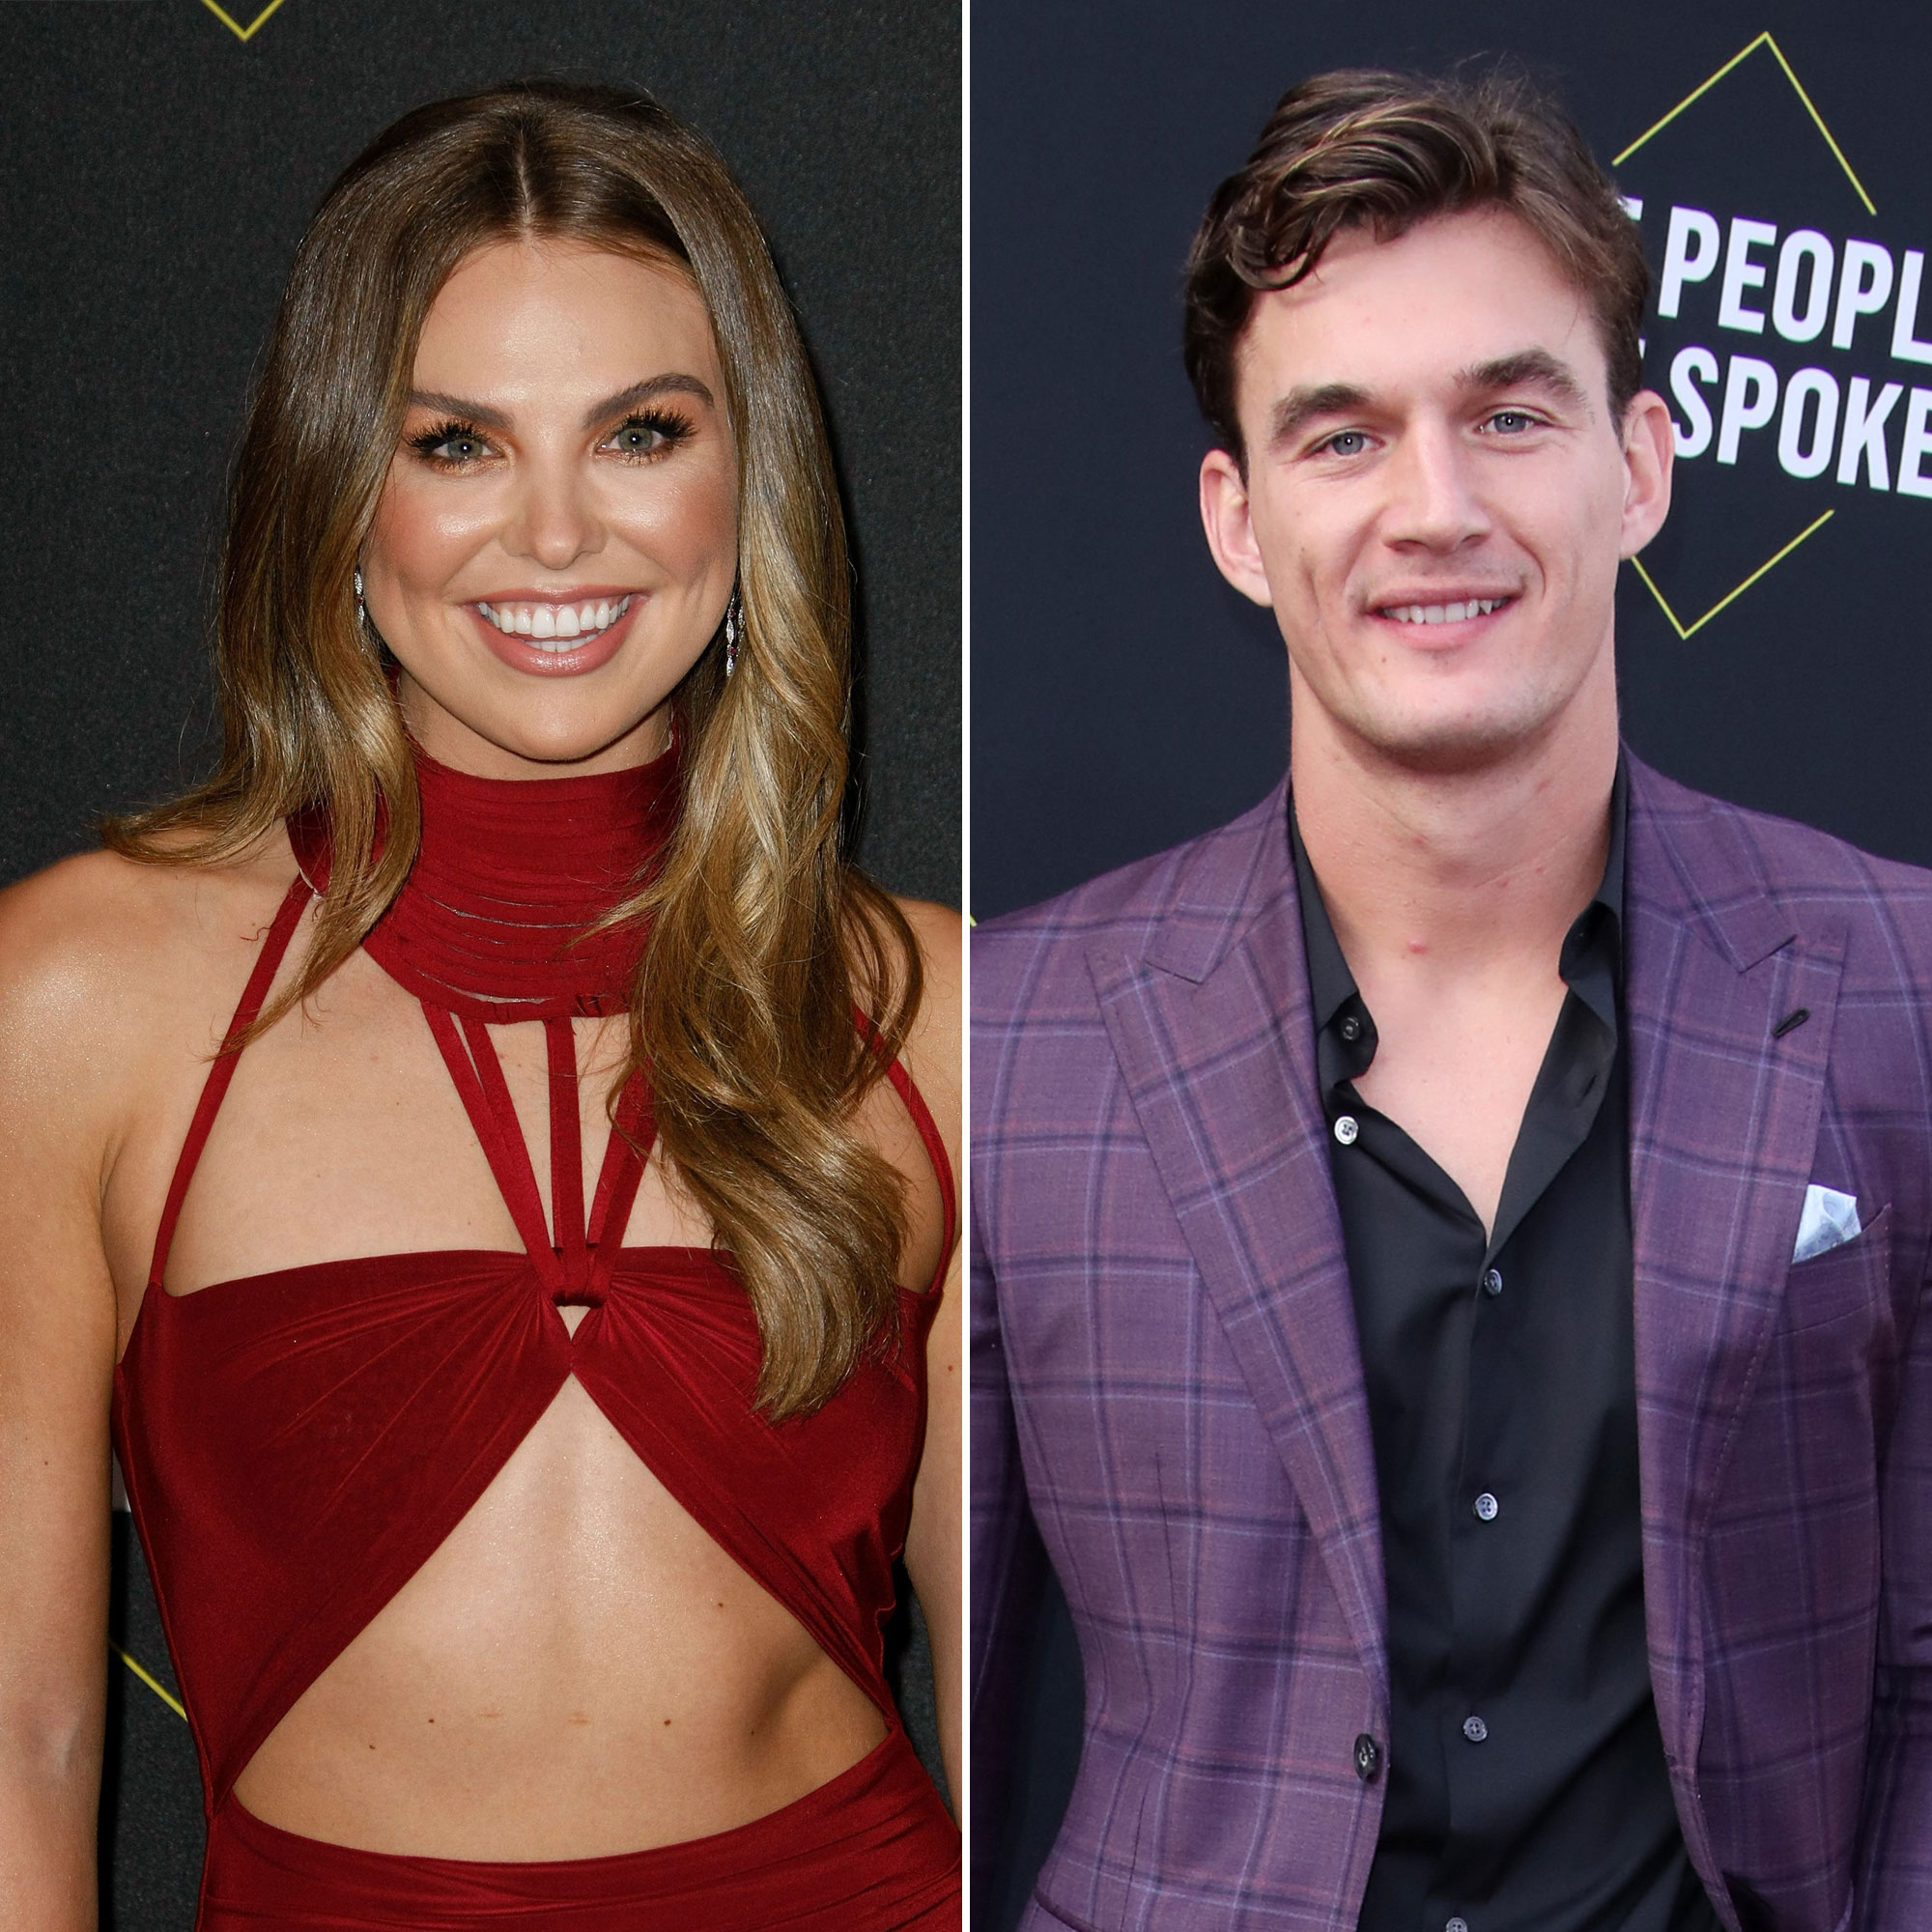 Hannah B. Wasn't Nervous About Bumping Into Tyler Cameron at the PCAs: 'There's No Place for Nerves'